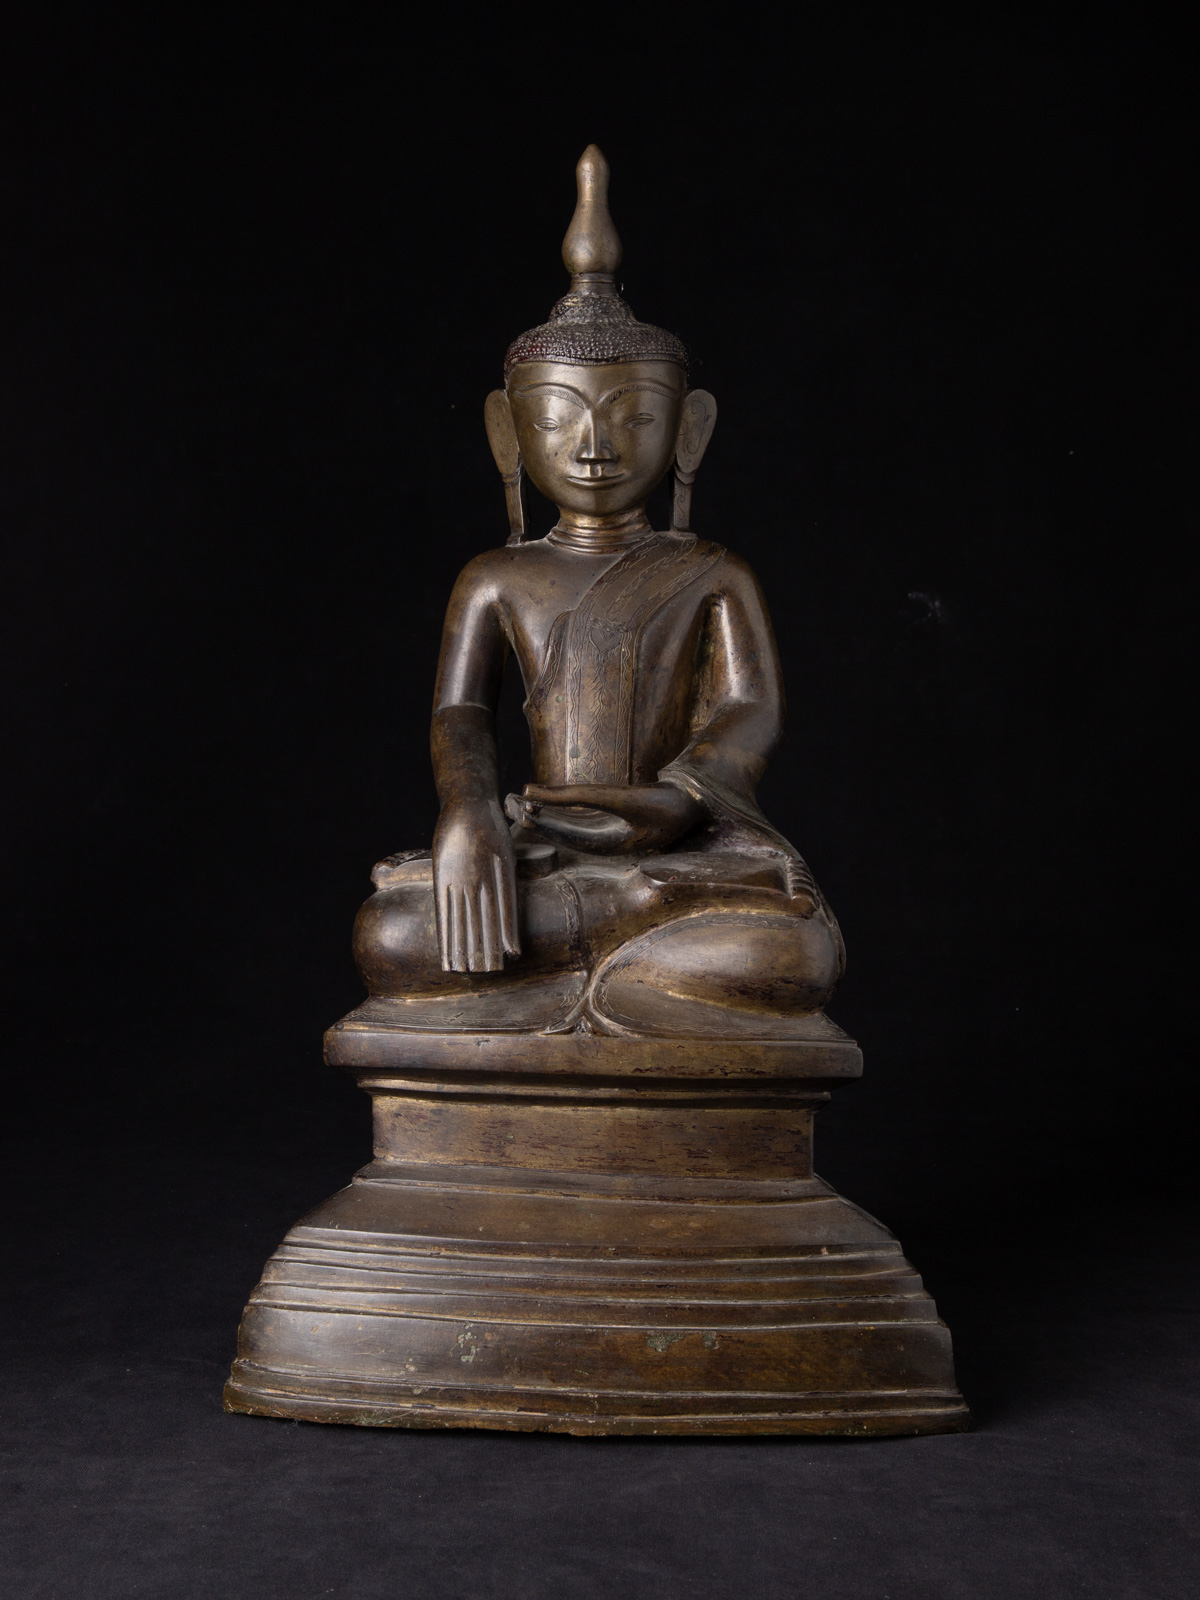 Large and special antique bronze Ava Buddha statue from Burma made from Bronze